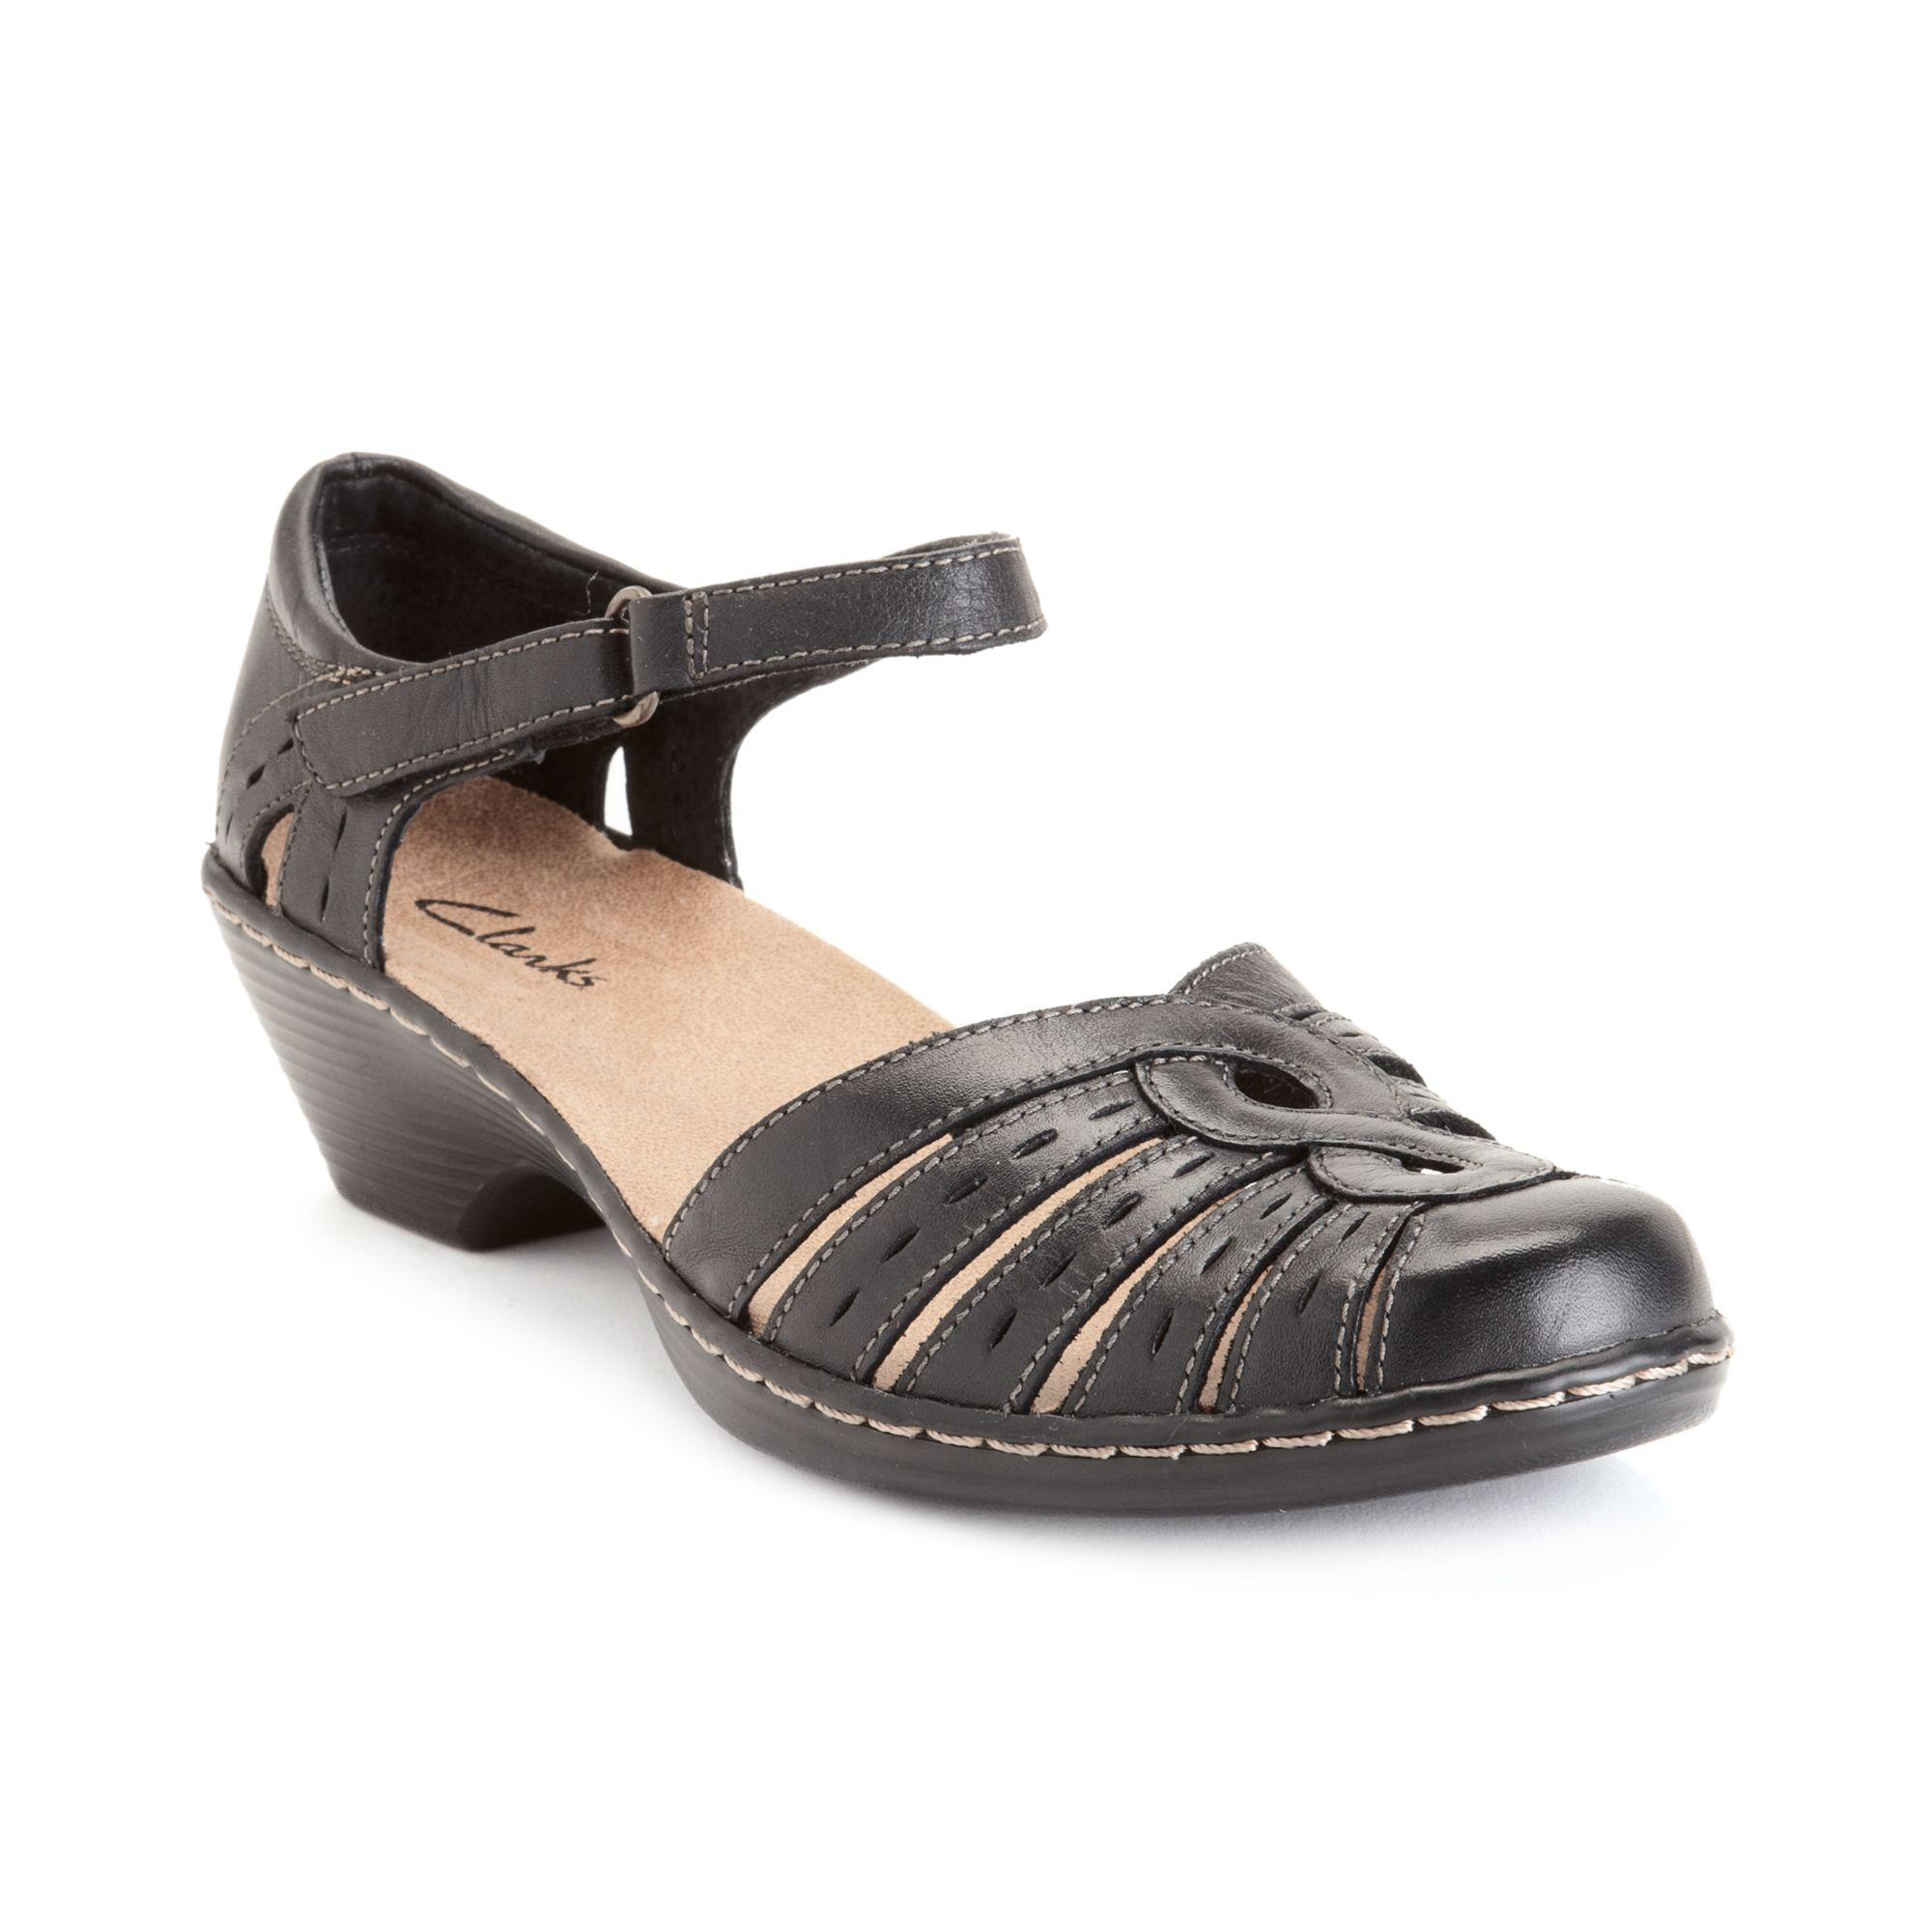 e15ee22779a3 Lyst - Clarks Womens Shoes Wendy River Sandals in Black